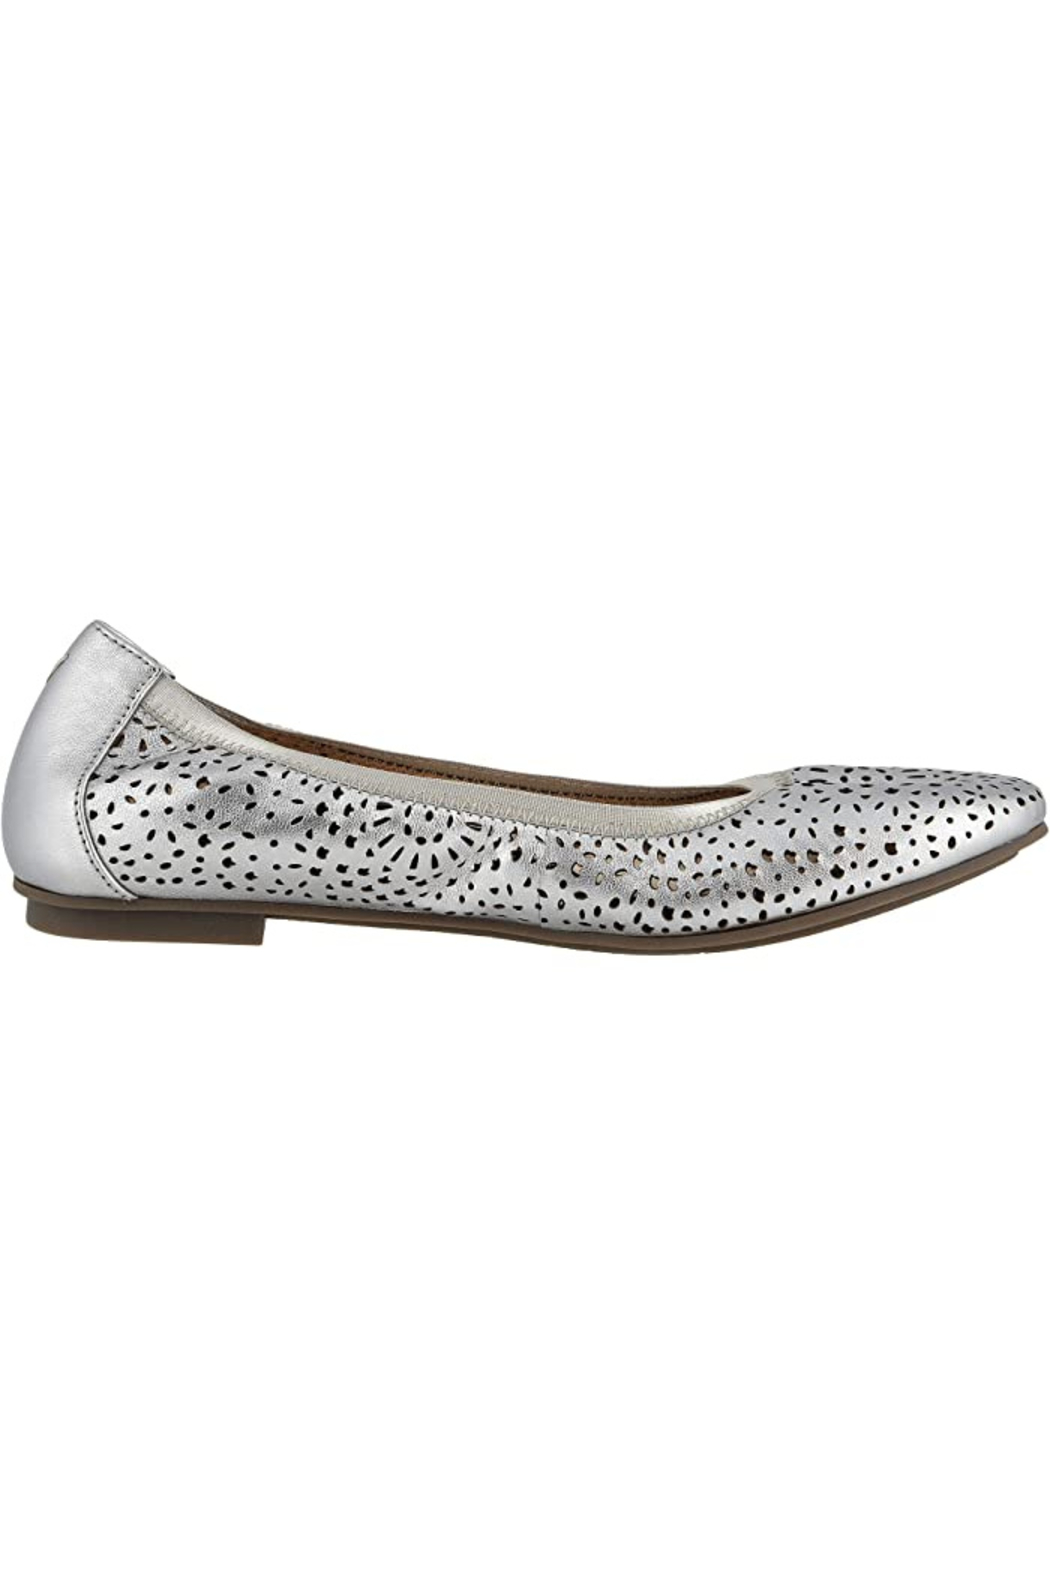 Vionic Robyn Perf Ballet Flat - Front Cropped Image